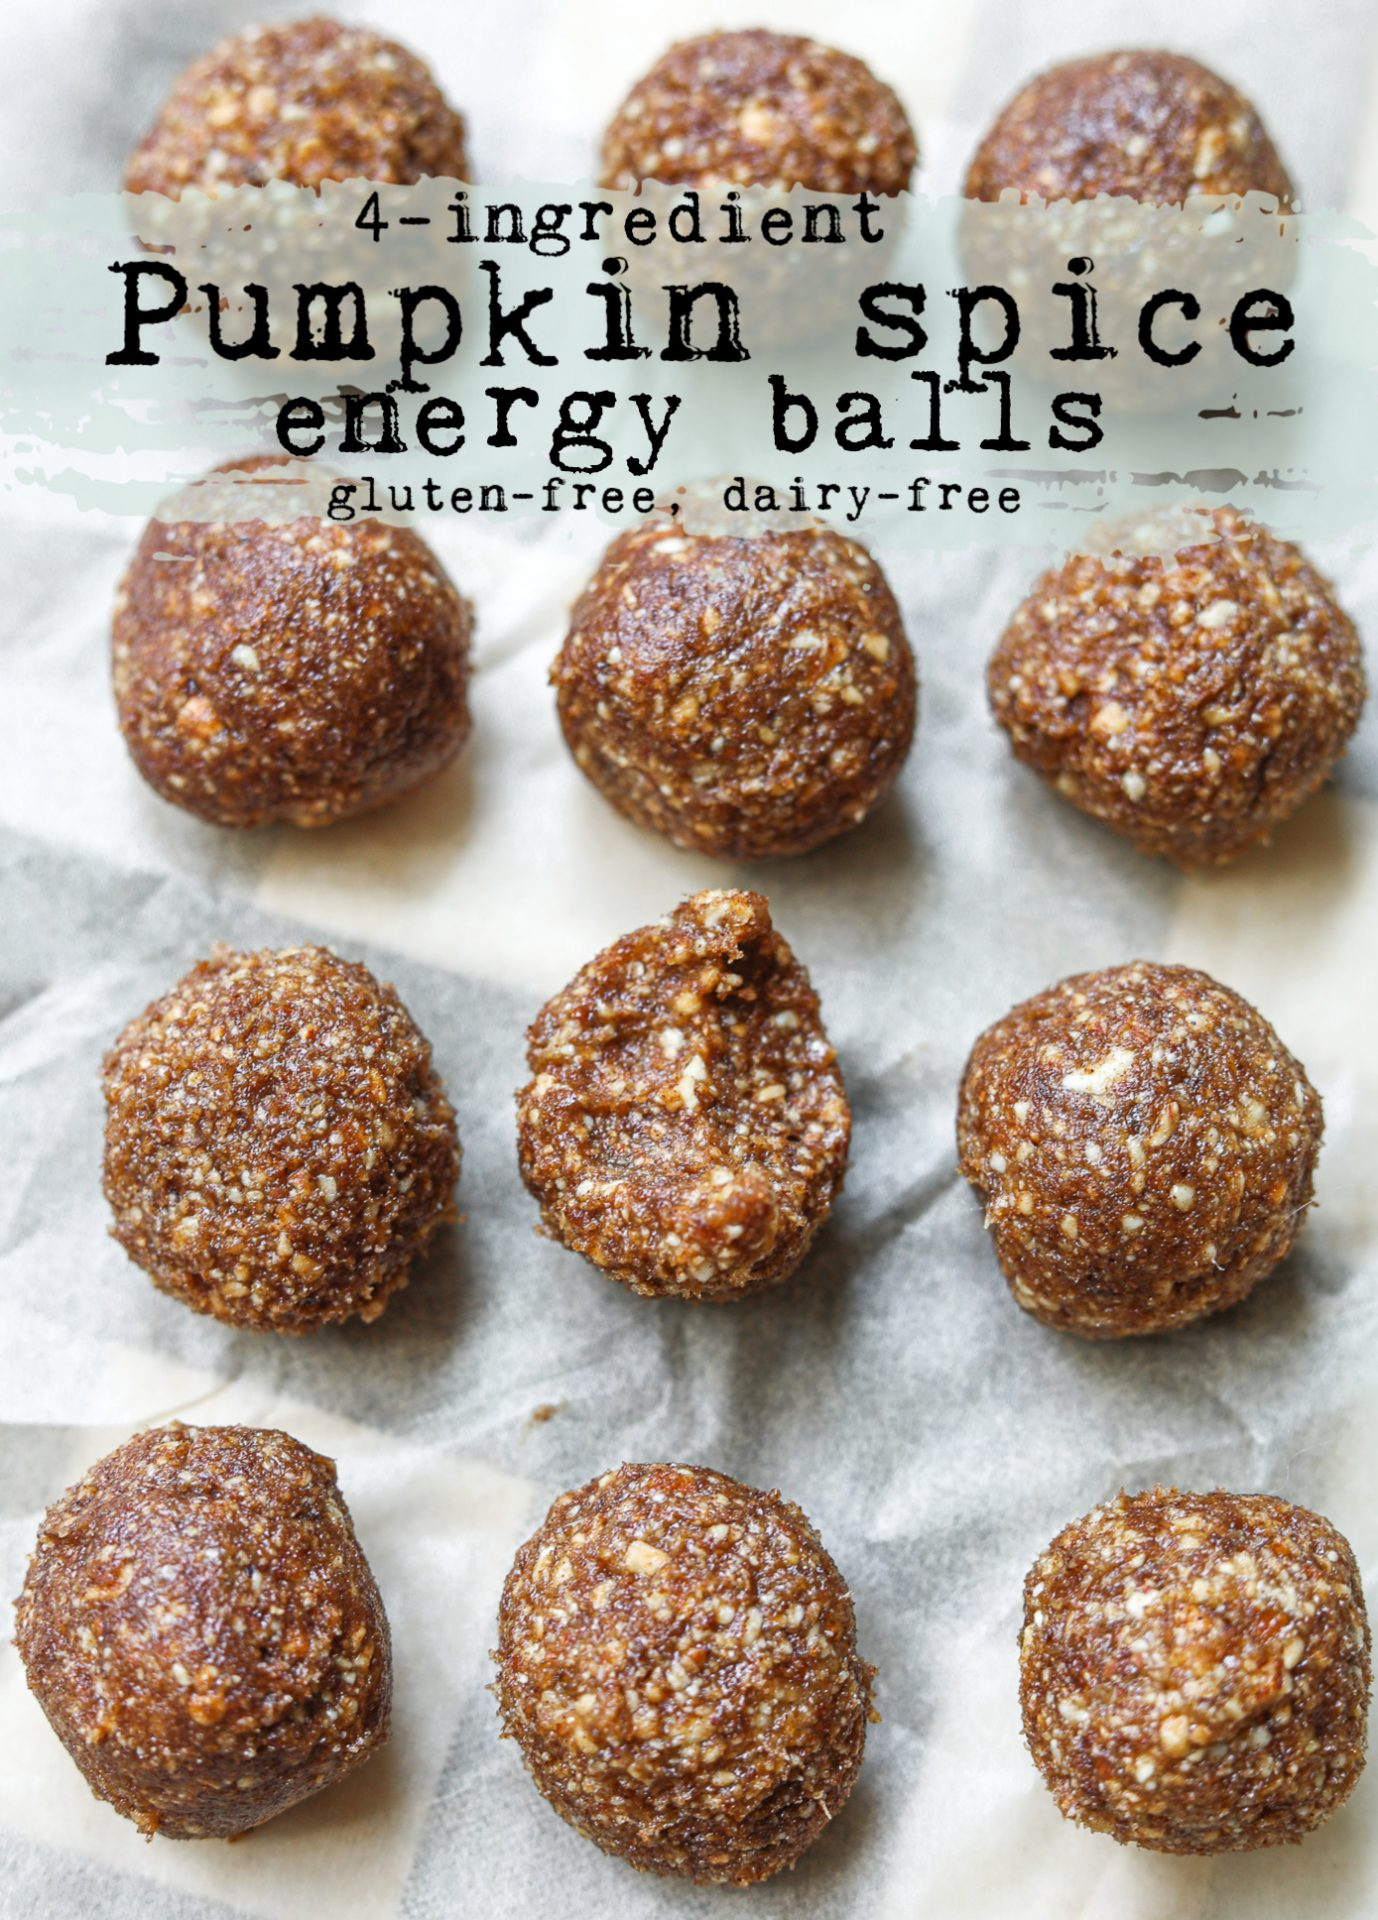 pumpkin spice, energy balls, nuts, almonds, cashews, recipe, vegan, gluten free, dairy free, paleo, raw cashews, whole30, raw vegan, dates, healthy snacking, pumpkin spice recipes, fall, four-ingredients, nut balls, protein